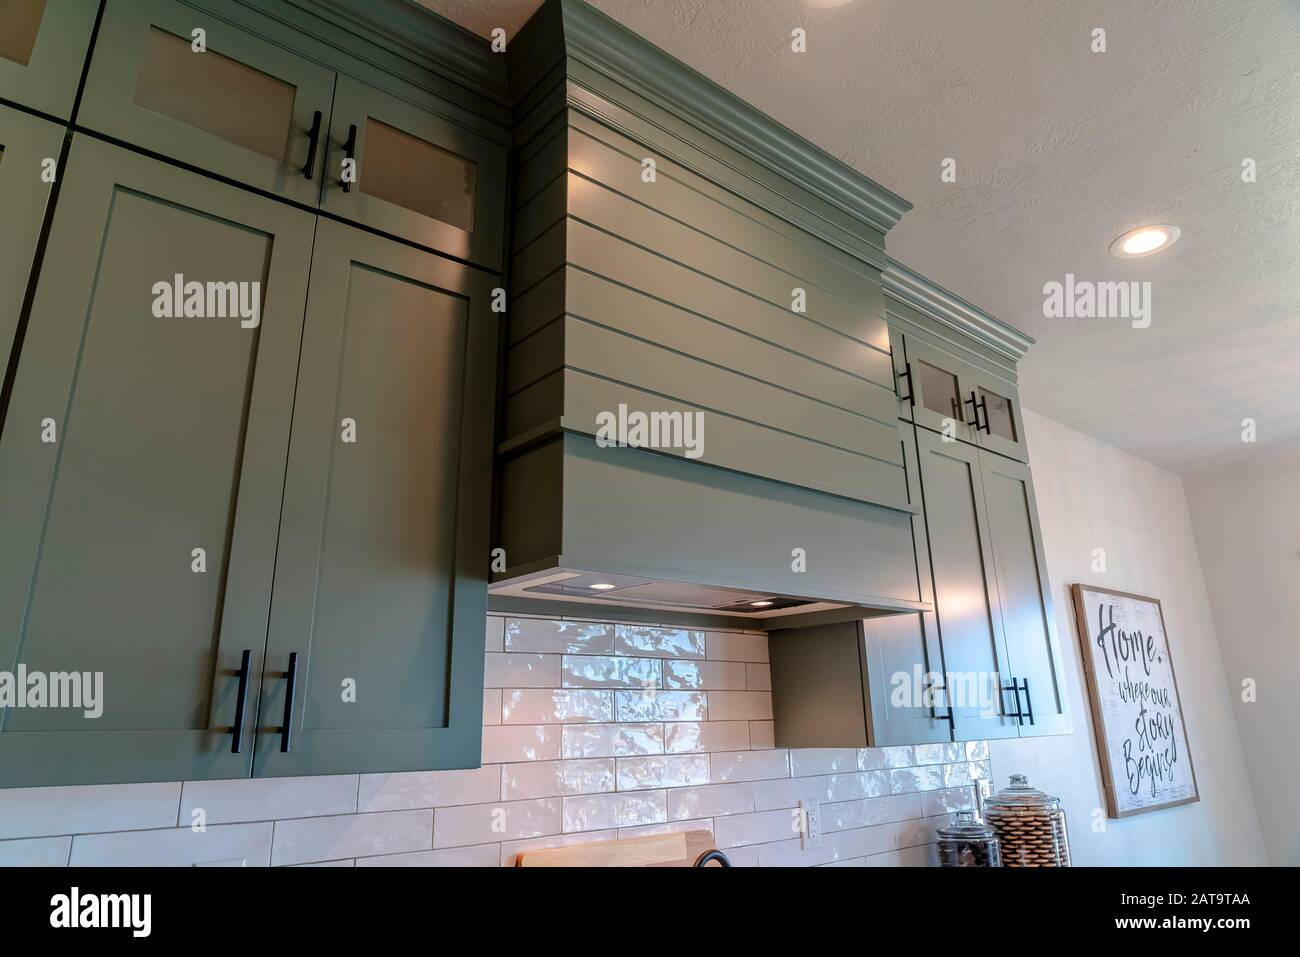 Kitchen Interior With Hanging Cabinets Against Tile Backsplash And Ceiling Stock Photo Alamy